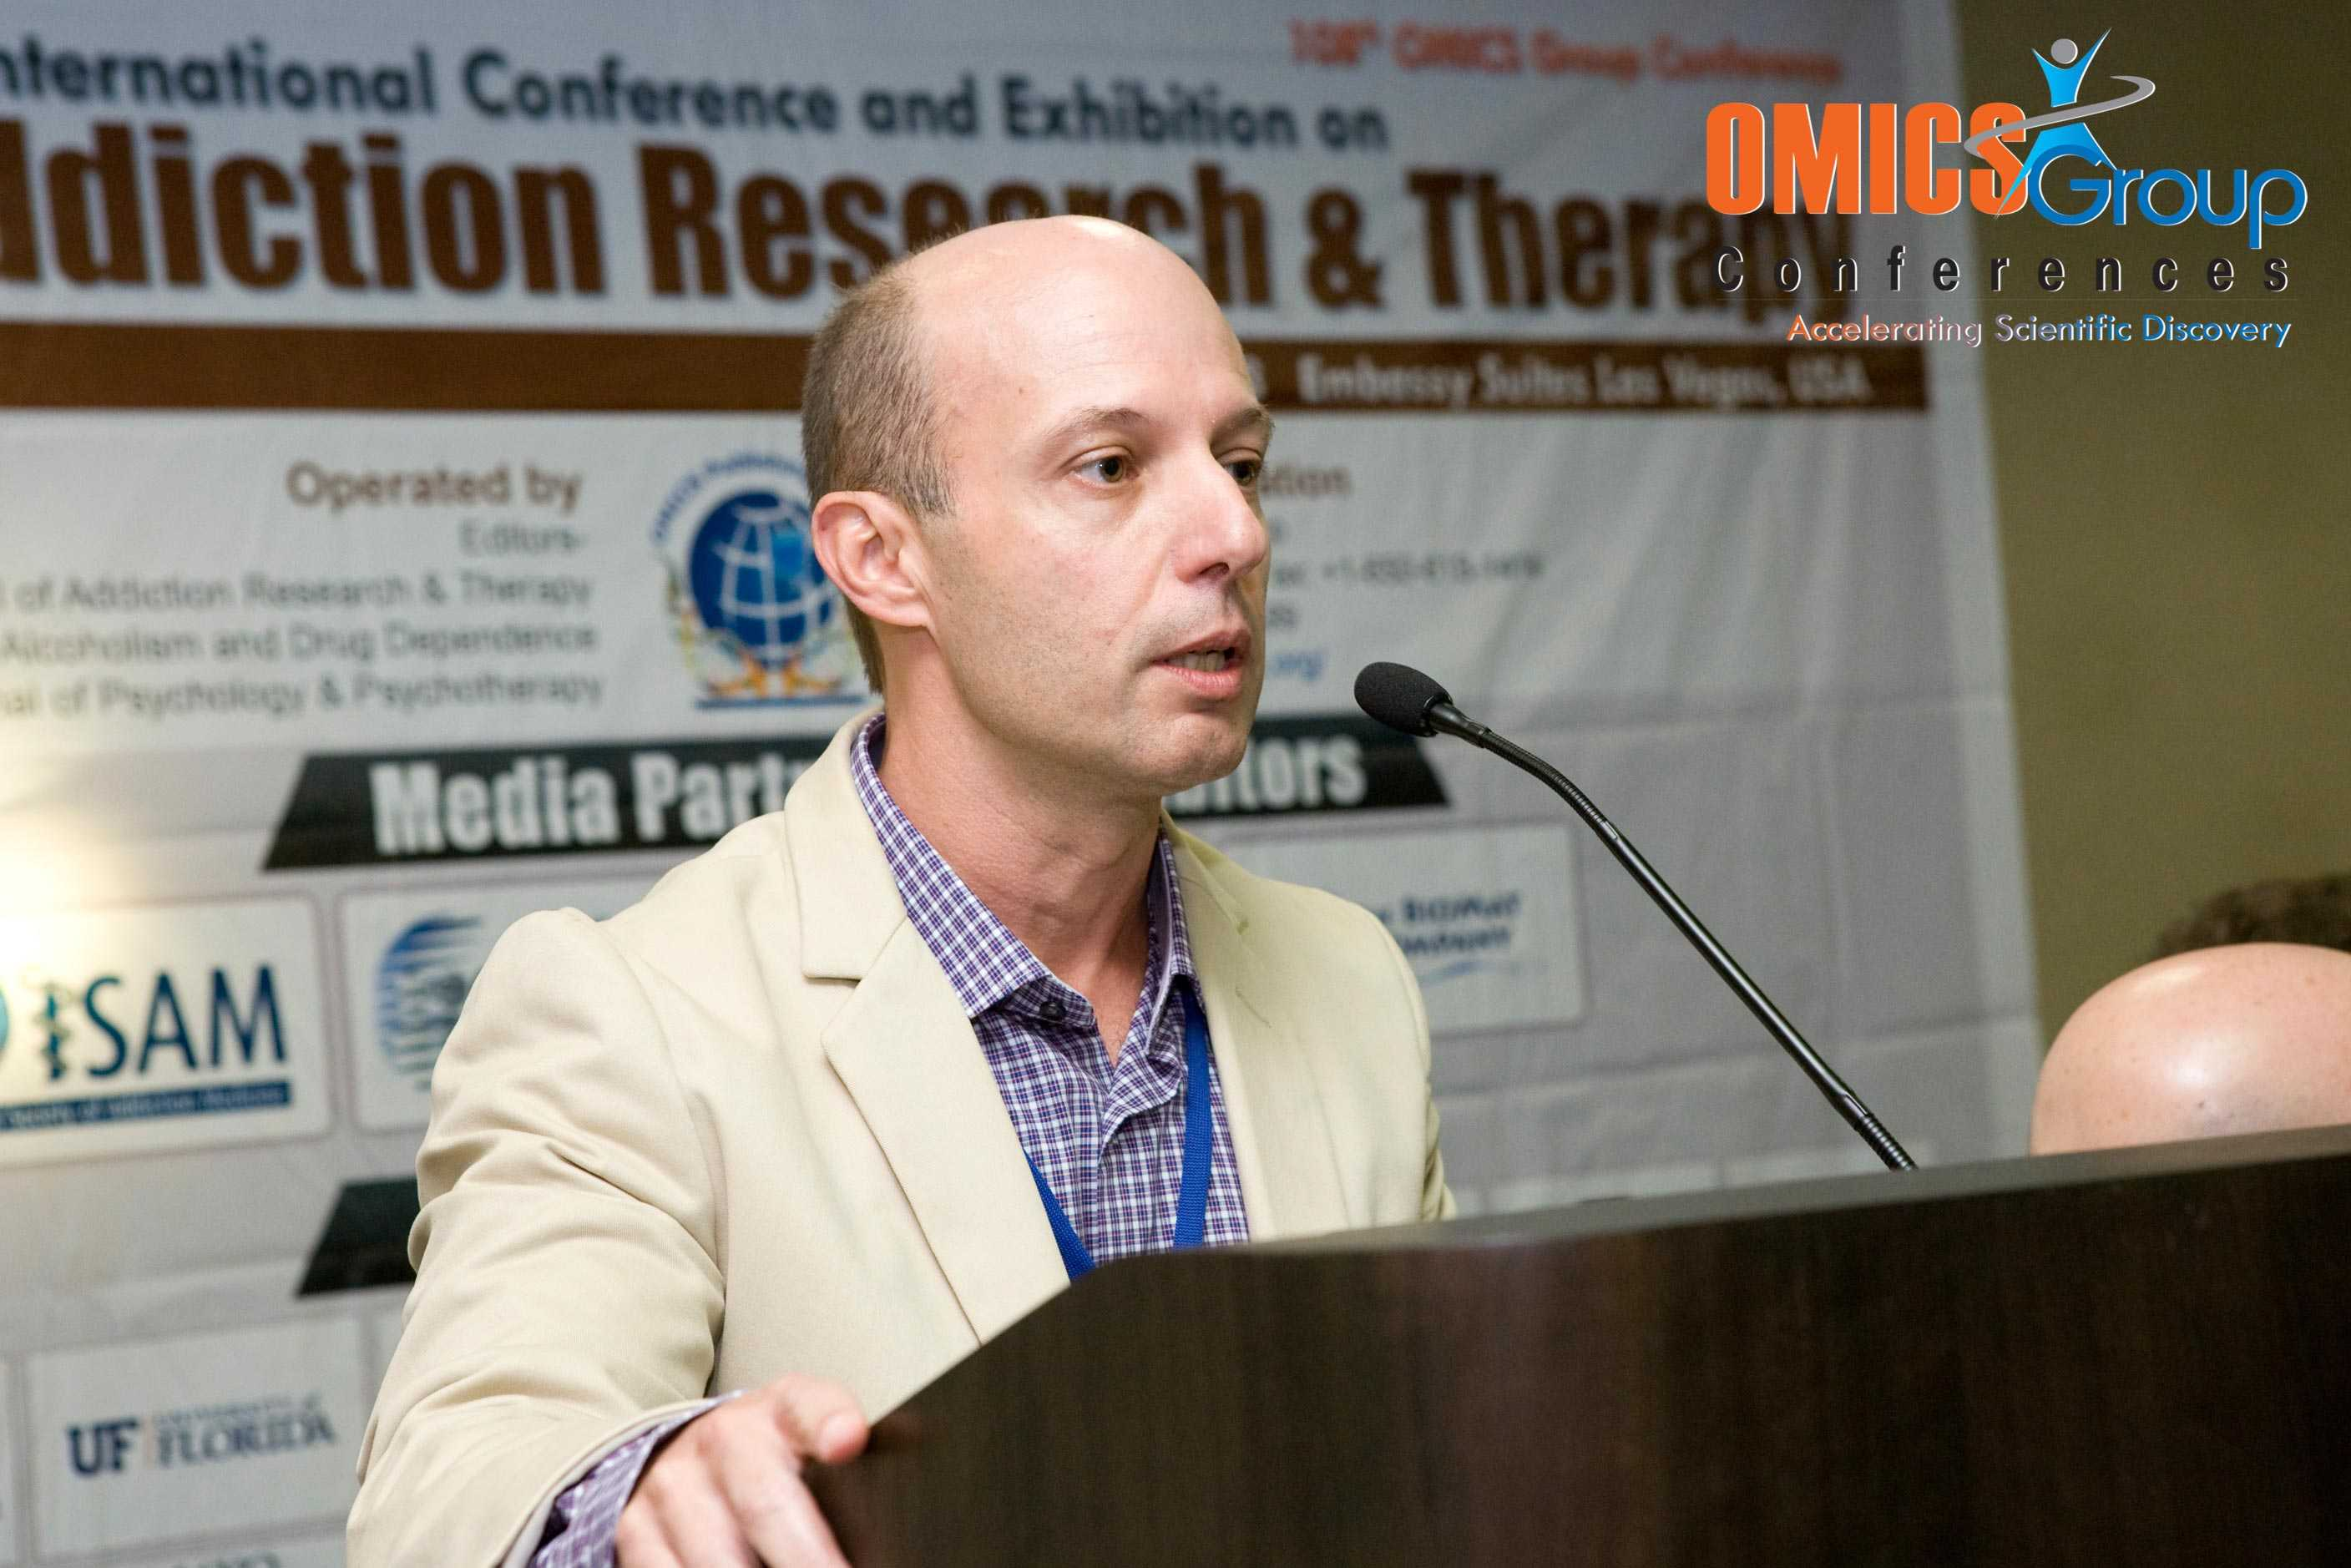 Marco de Tubino Scanavino | OMICS International